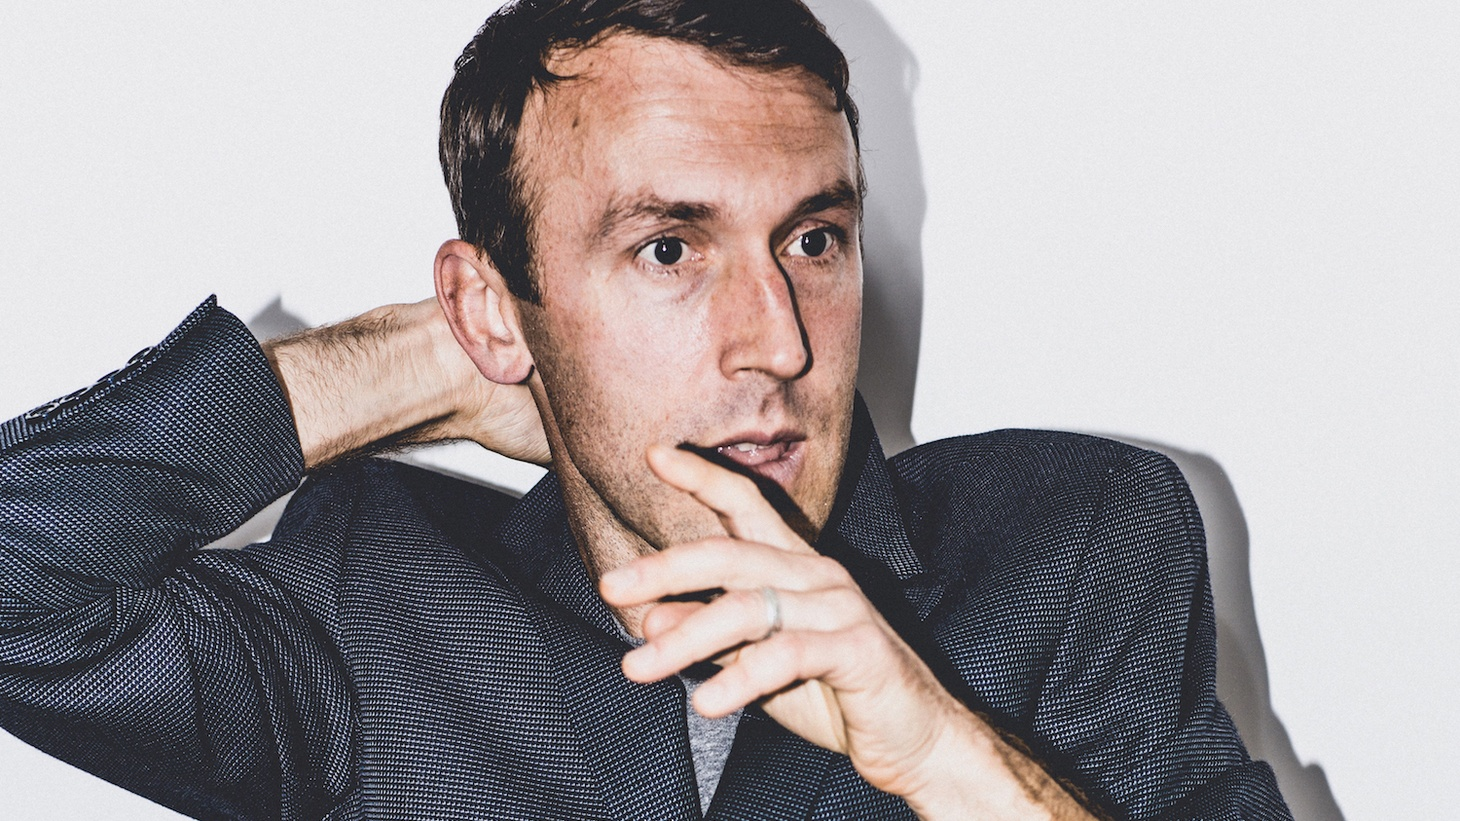 With a 20-year-plus career, the veteran producer and crate-digger RJD2 was deeply affected by his stay in Philly, where he picked up on the deep respect that city has for soul music.